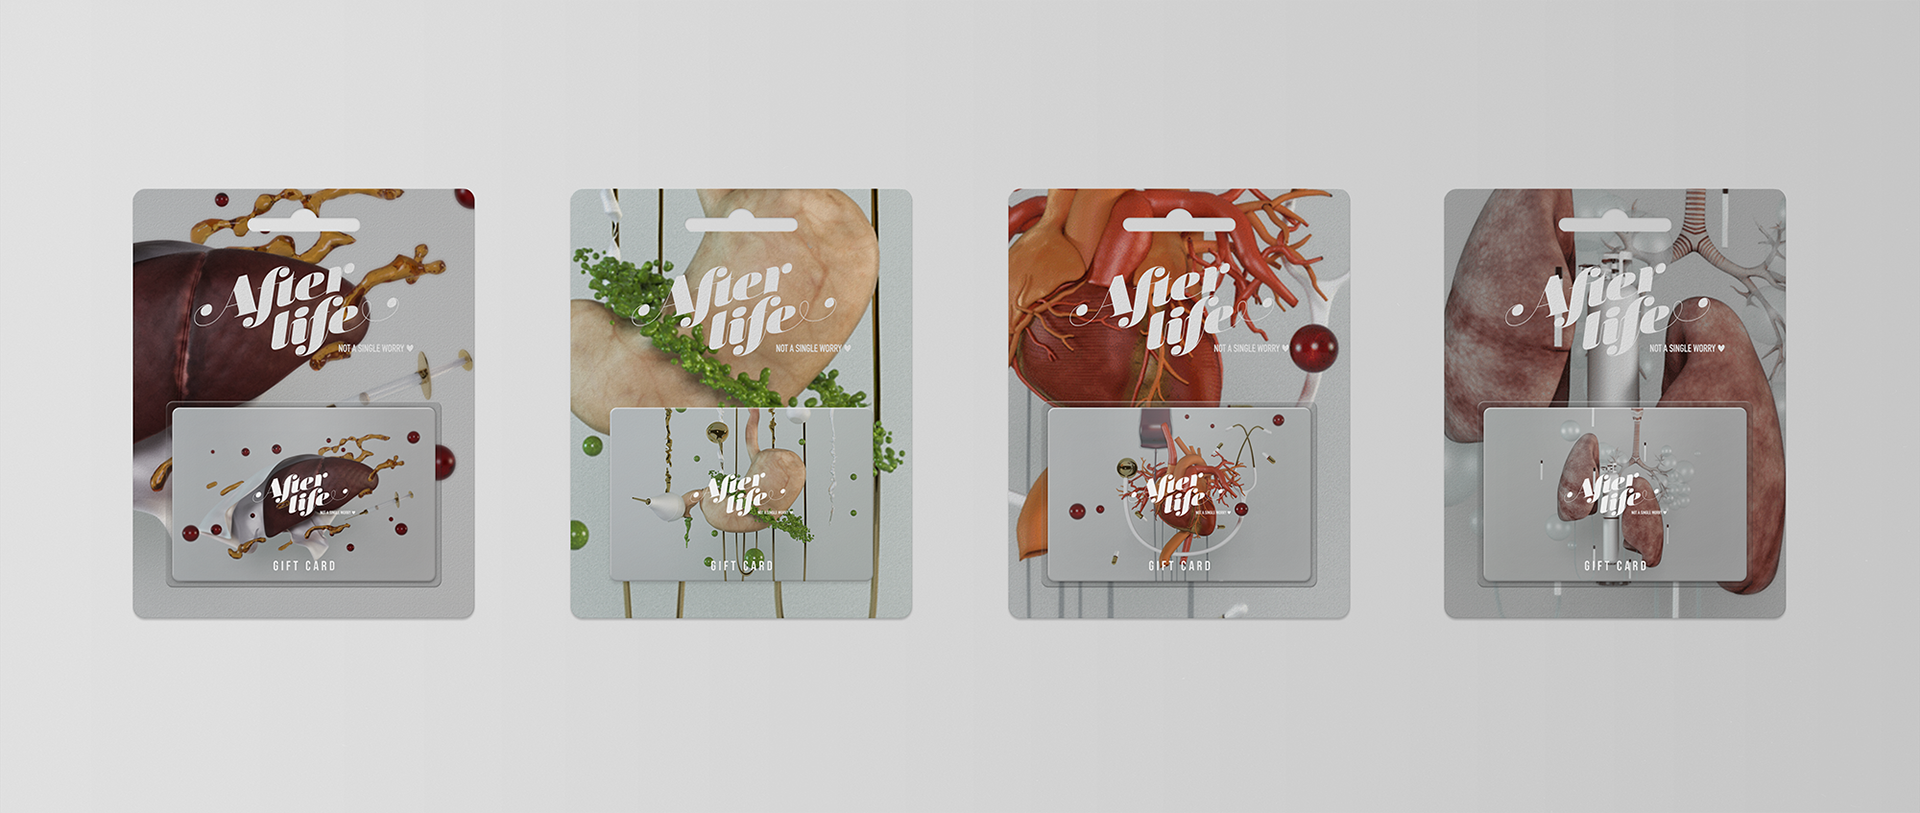 gift card packaging design for a future brand of 3d printing human organs or bio-printing